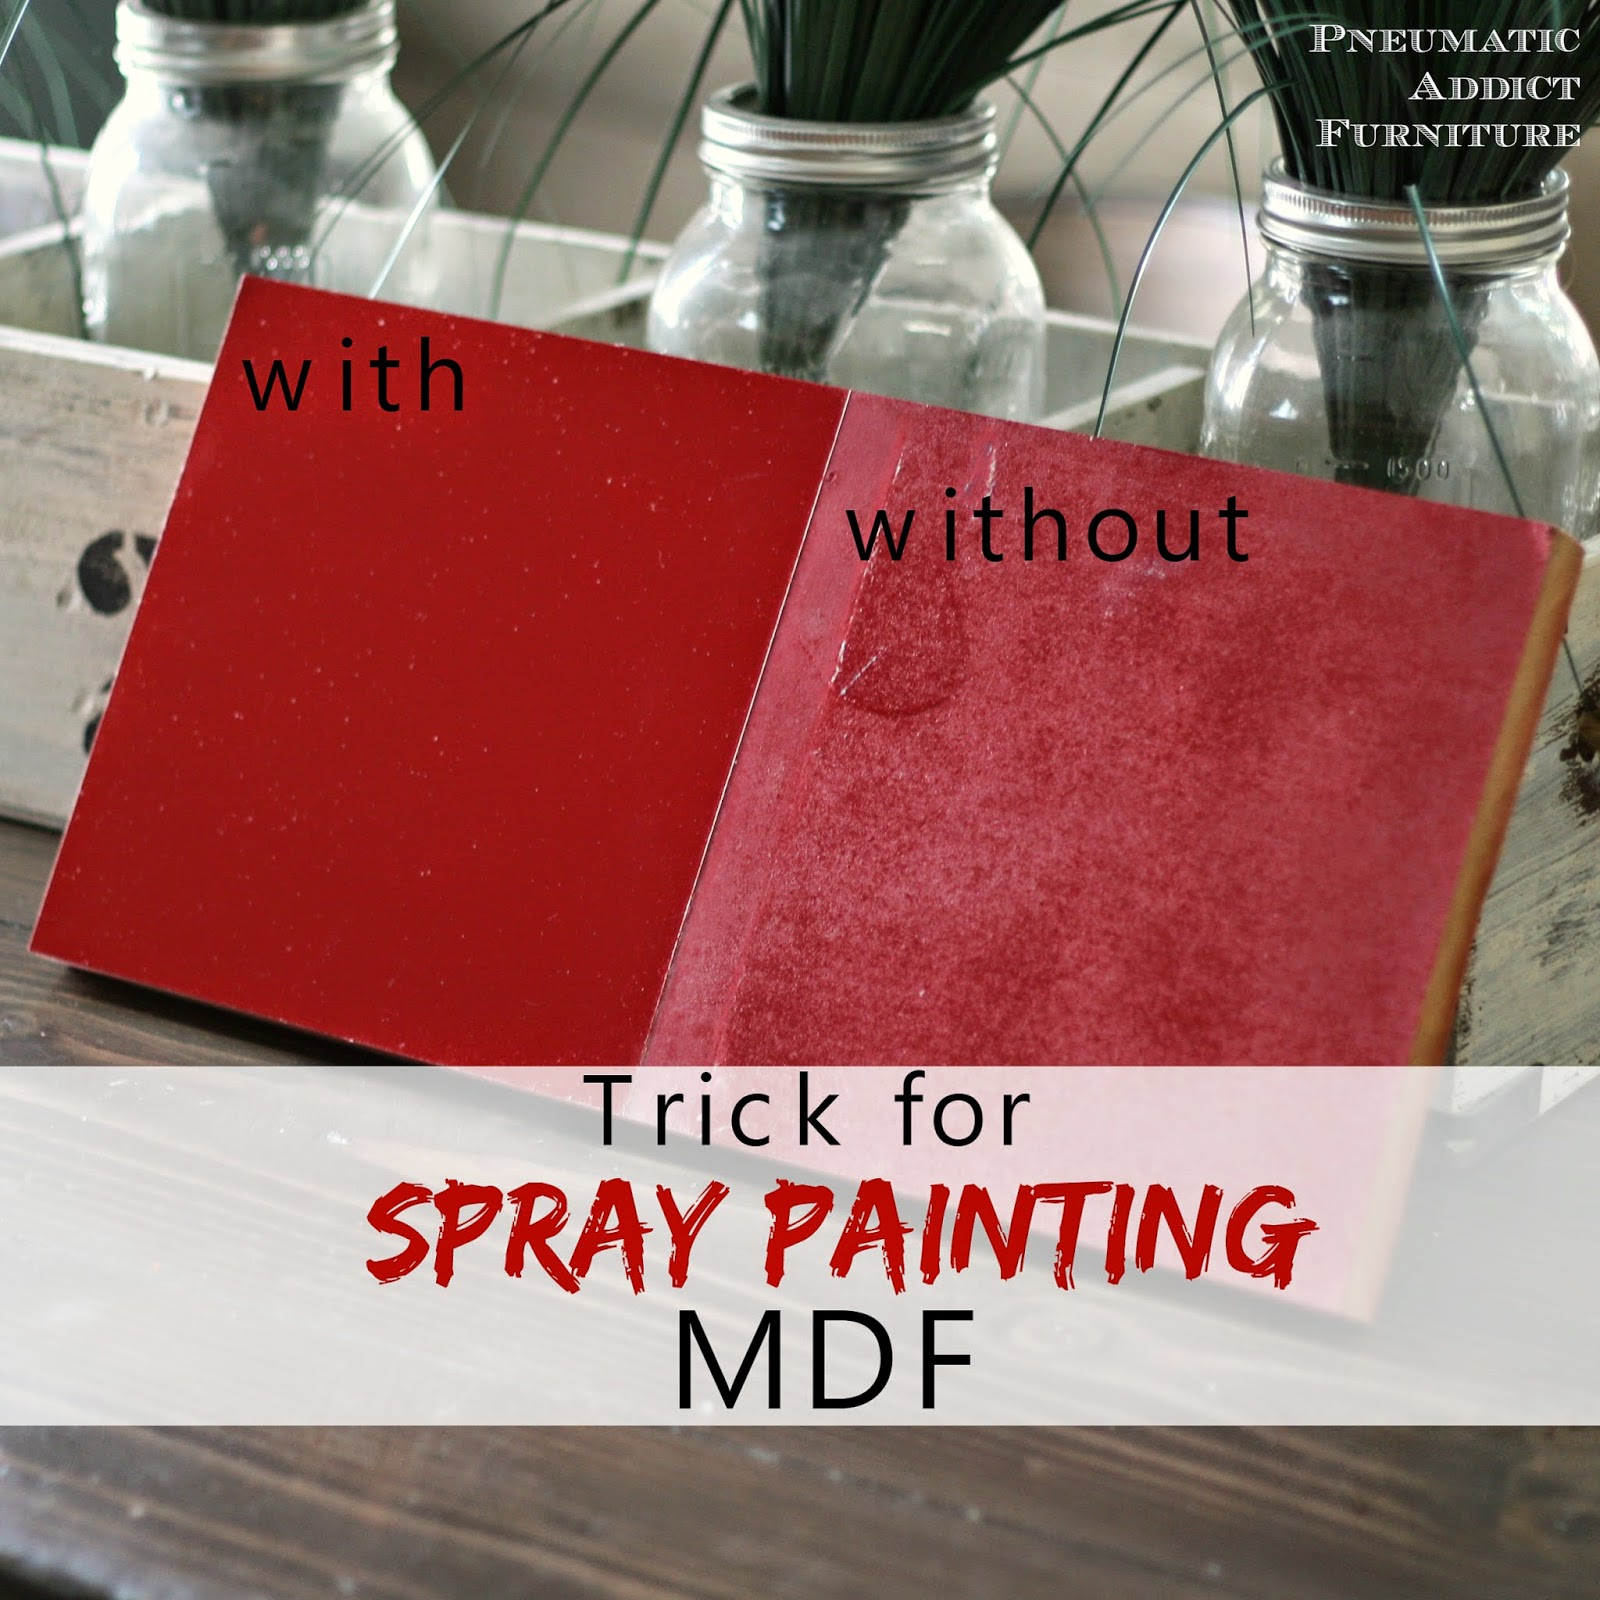 Have You Ever Spray Painted Mdf It S Right Stands For Medium Density Fiberboard Those Curious Minds There Is A Low